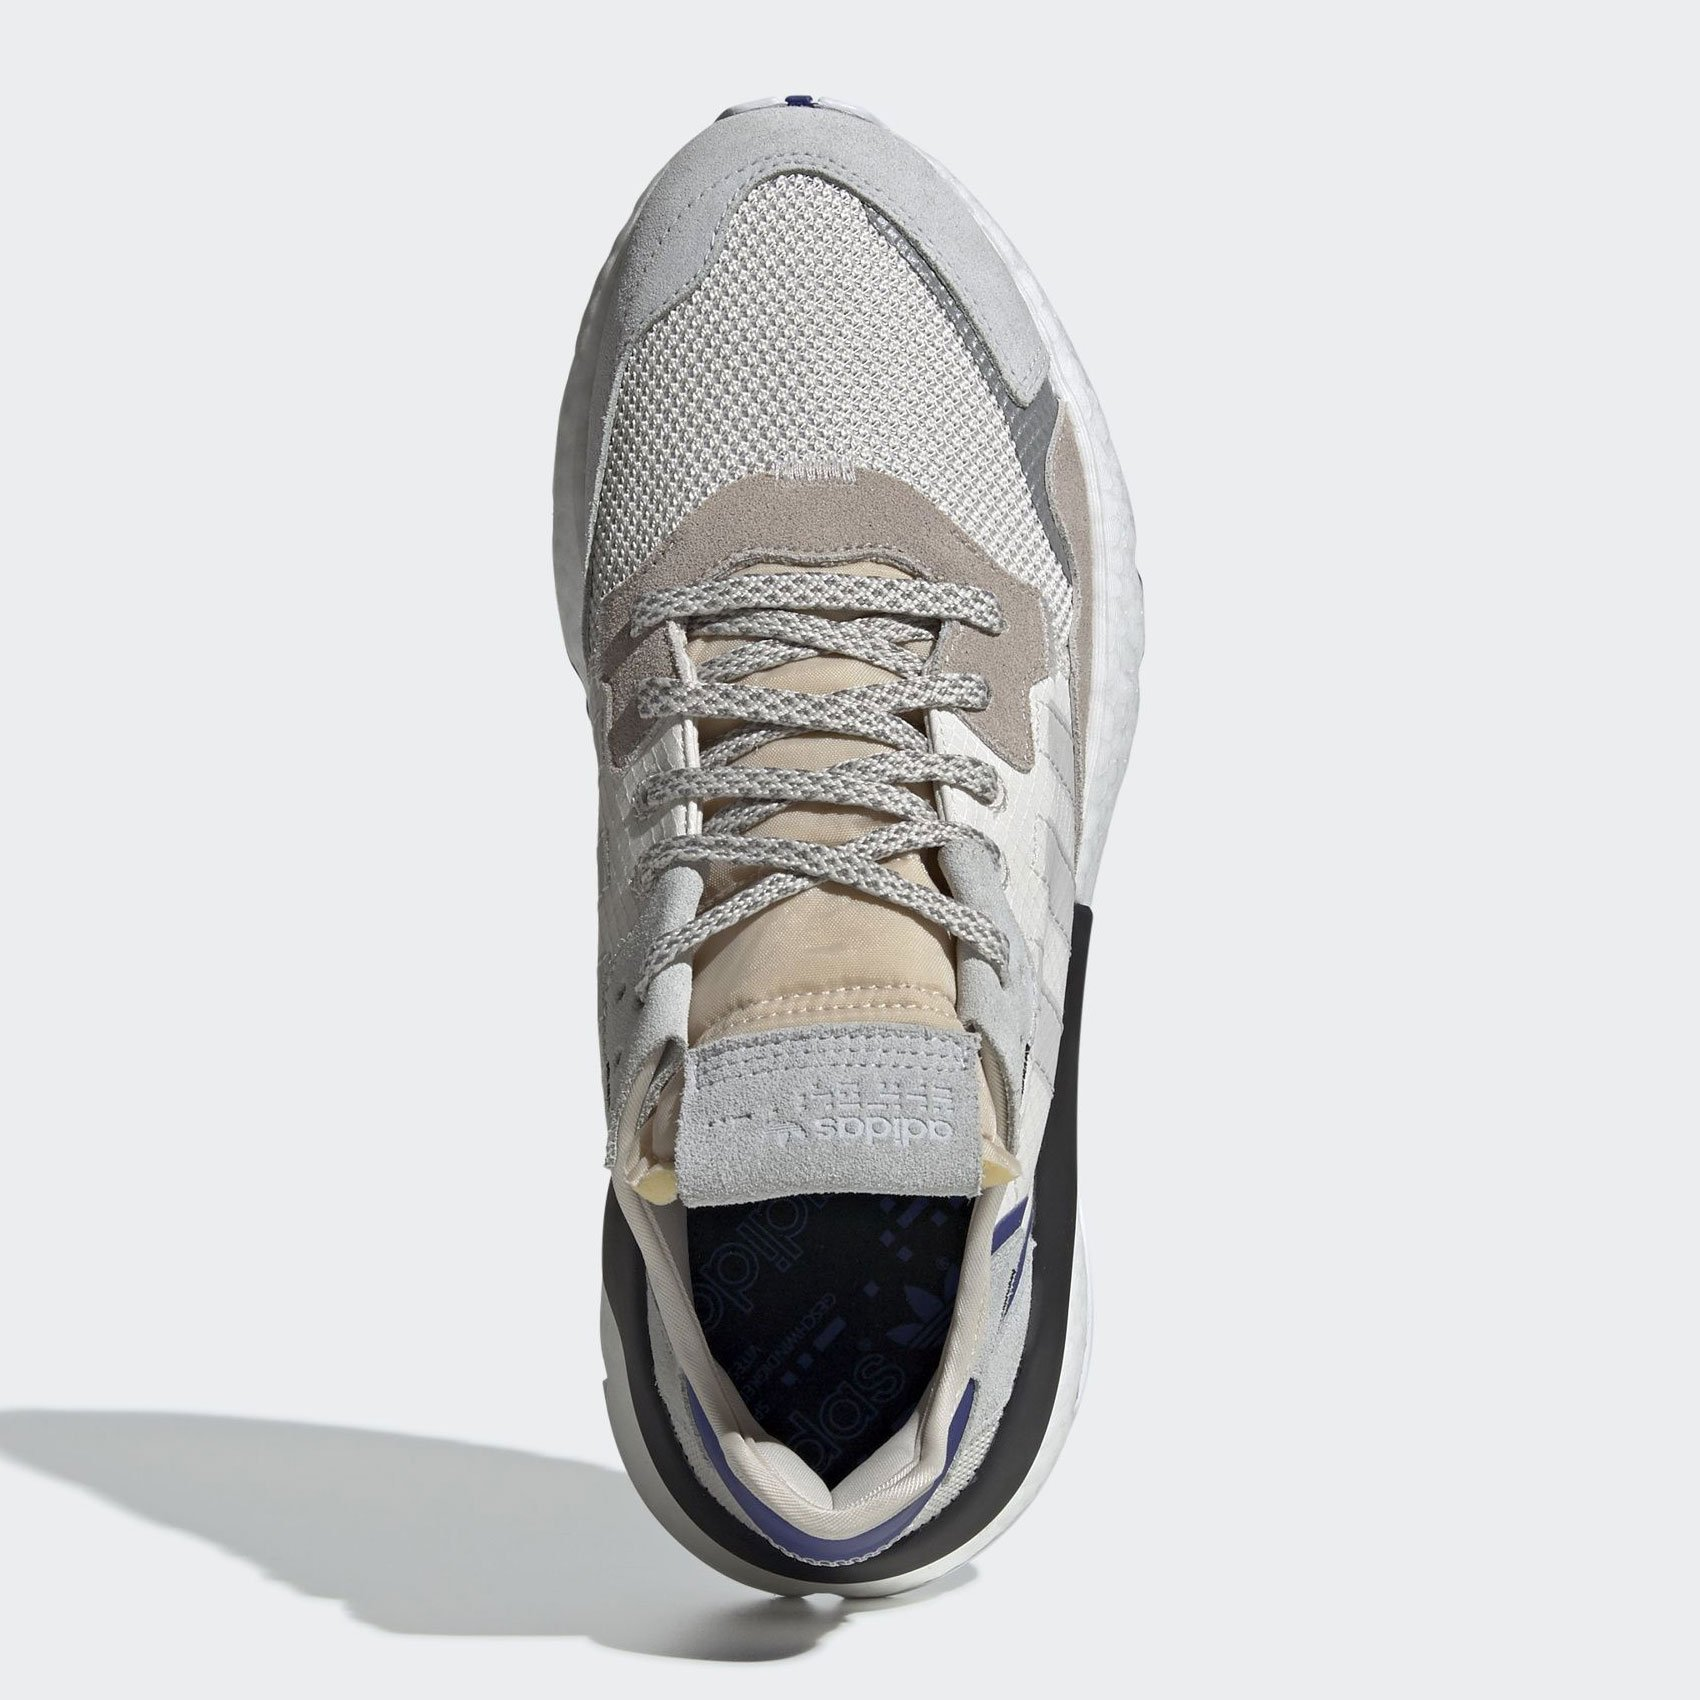 adidas Nite Jogger Raw White/Grey One/Active Blue F34124